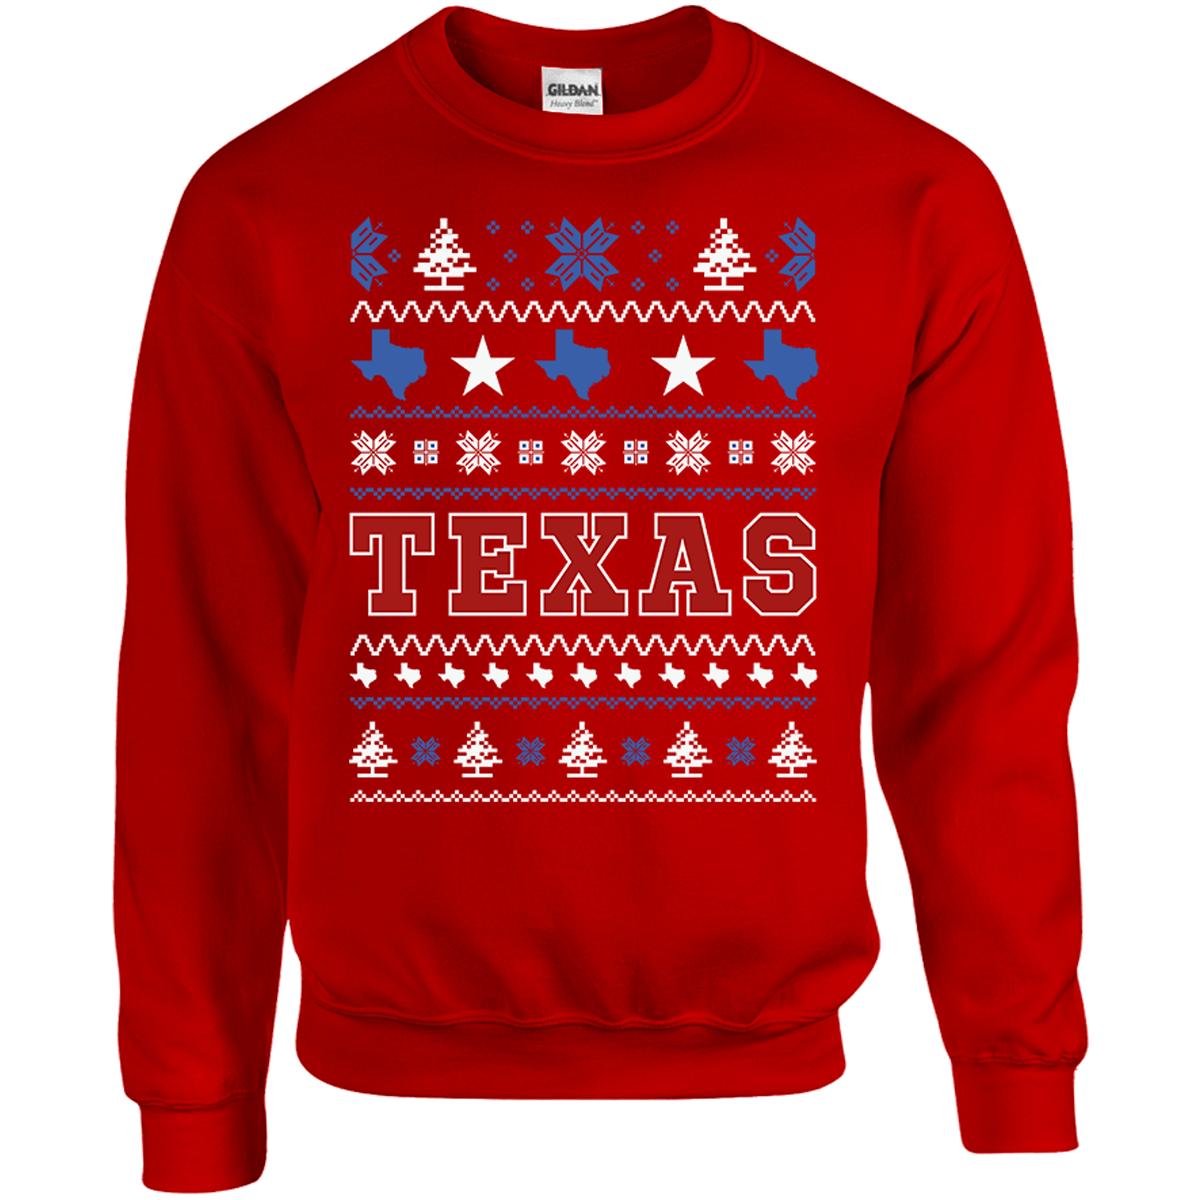 Texas Ugly Christmas Sweater